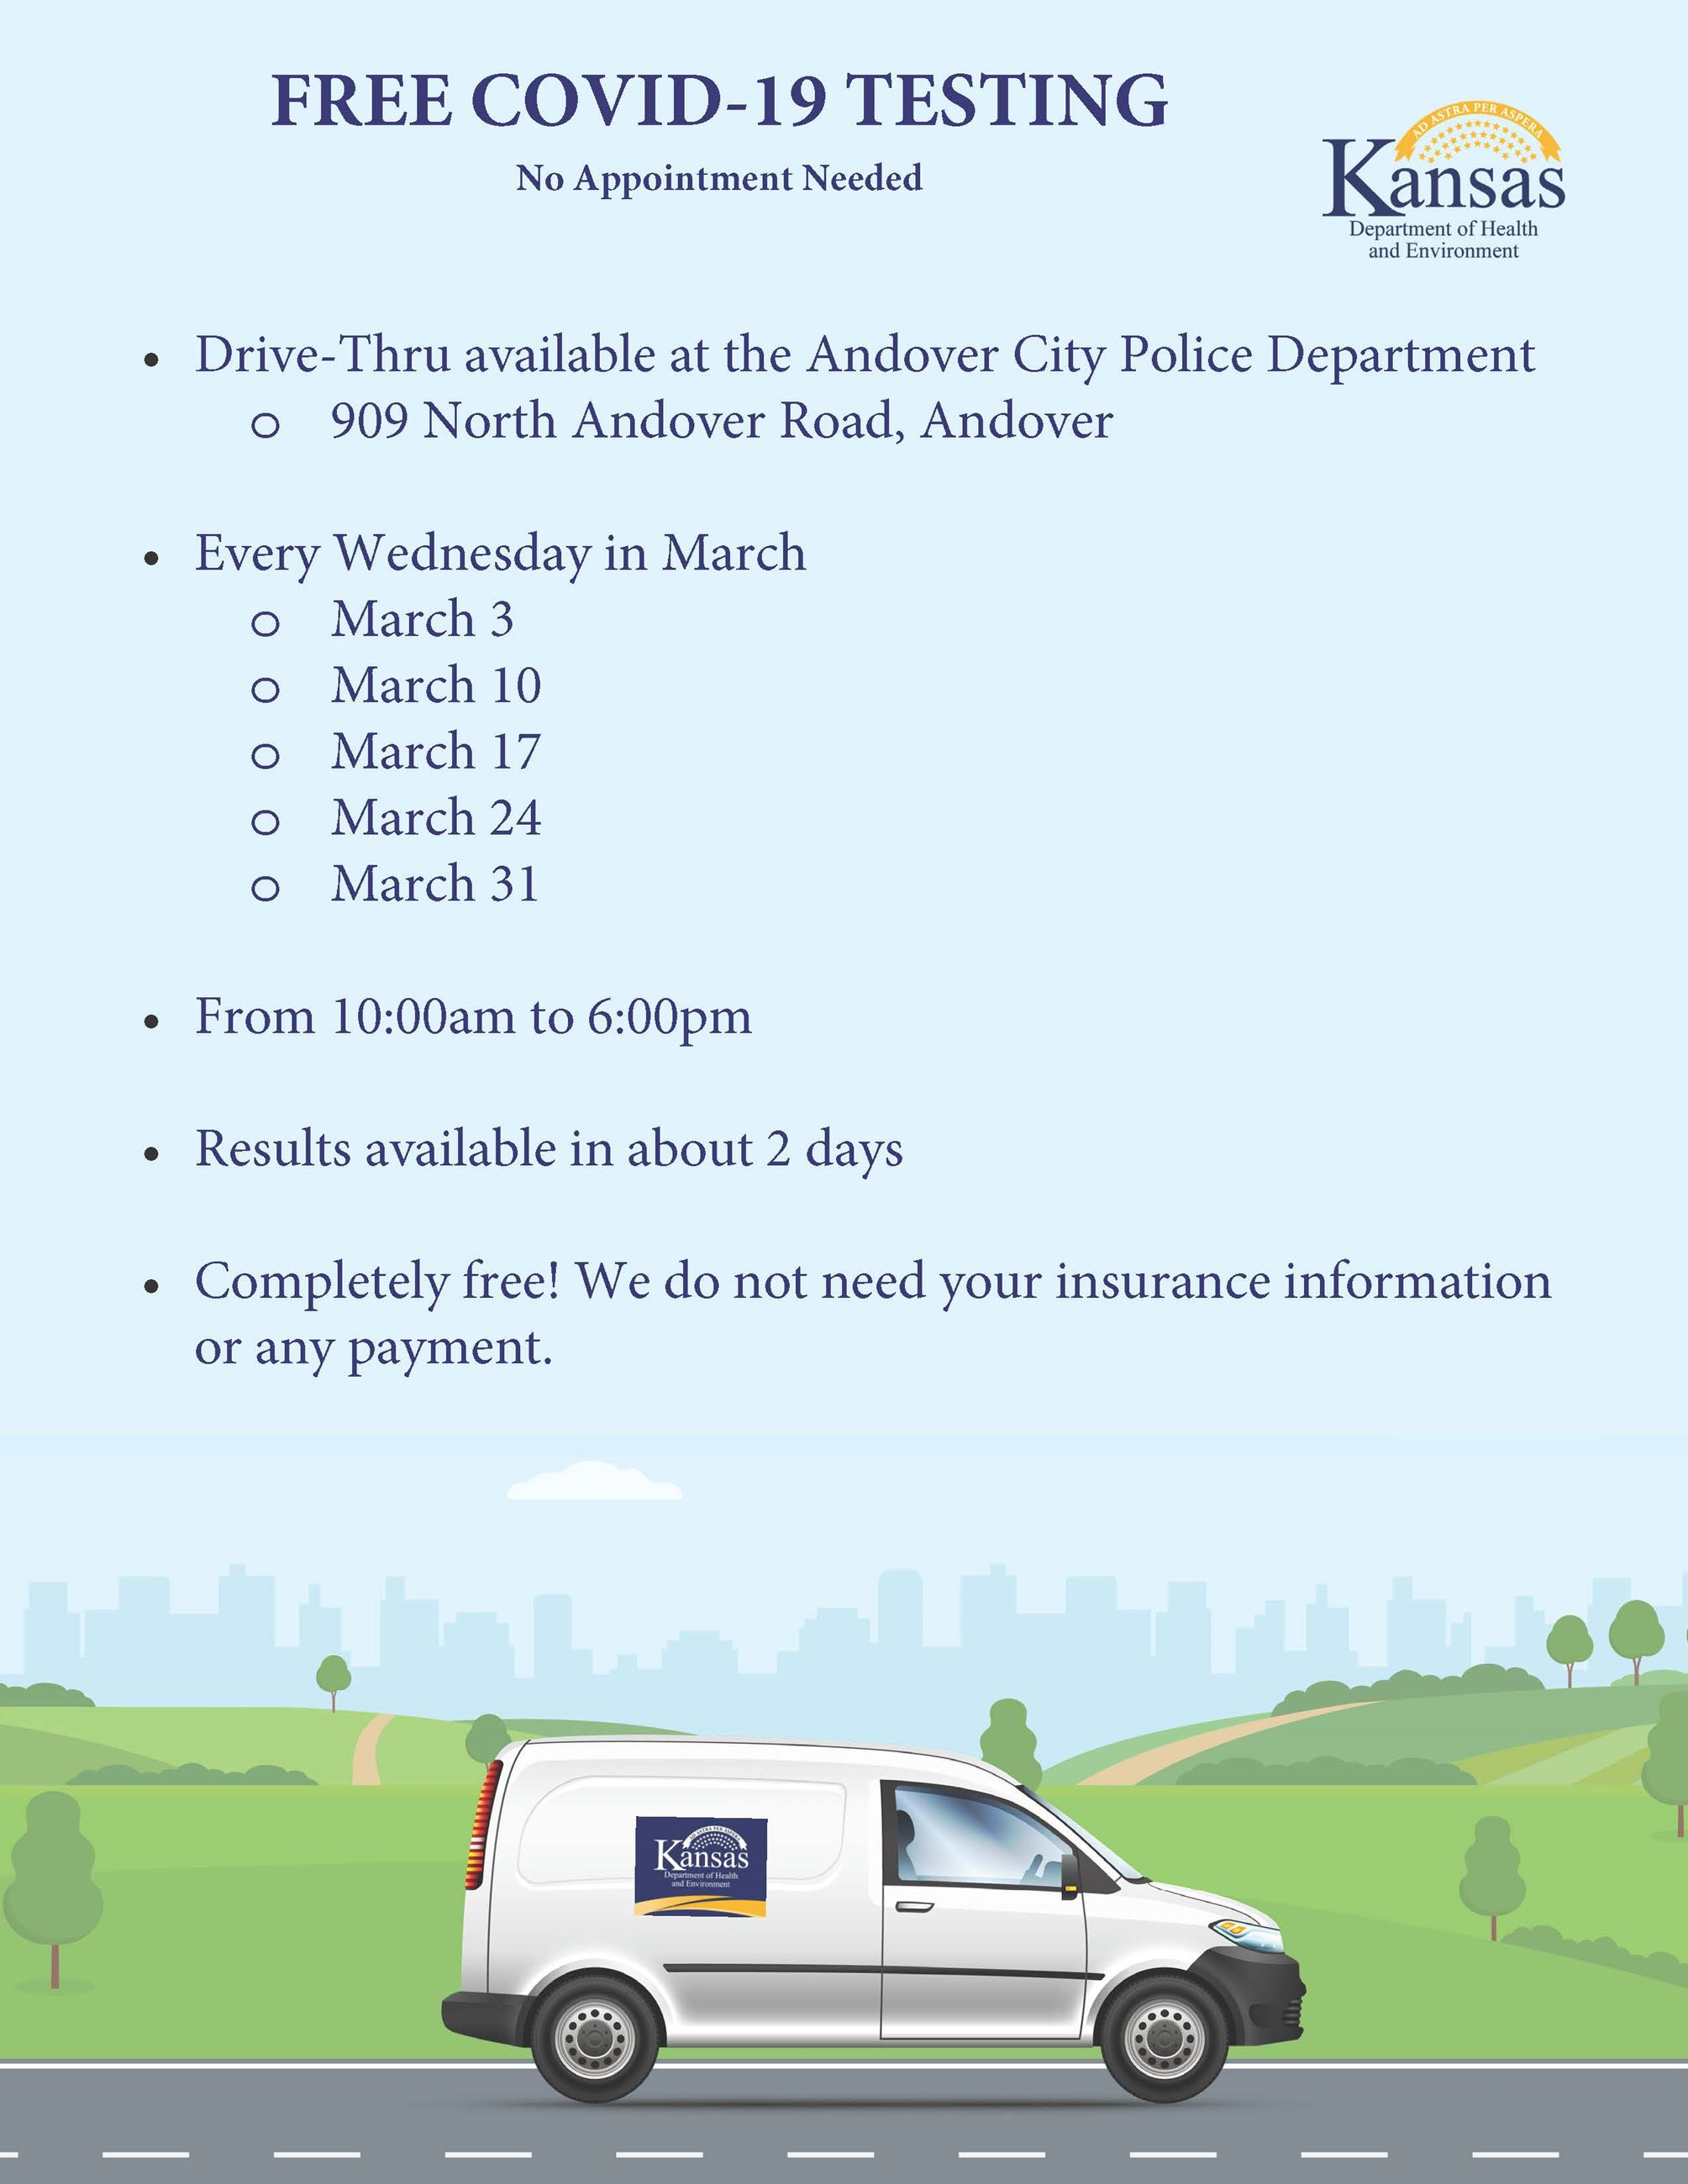 KDHE FREE COVID-19 Testing each Wednesday in March at Andover Police Department from 10am-6pm